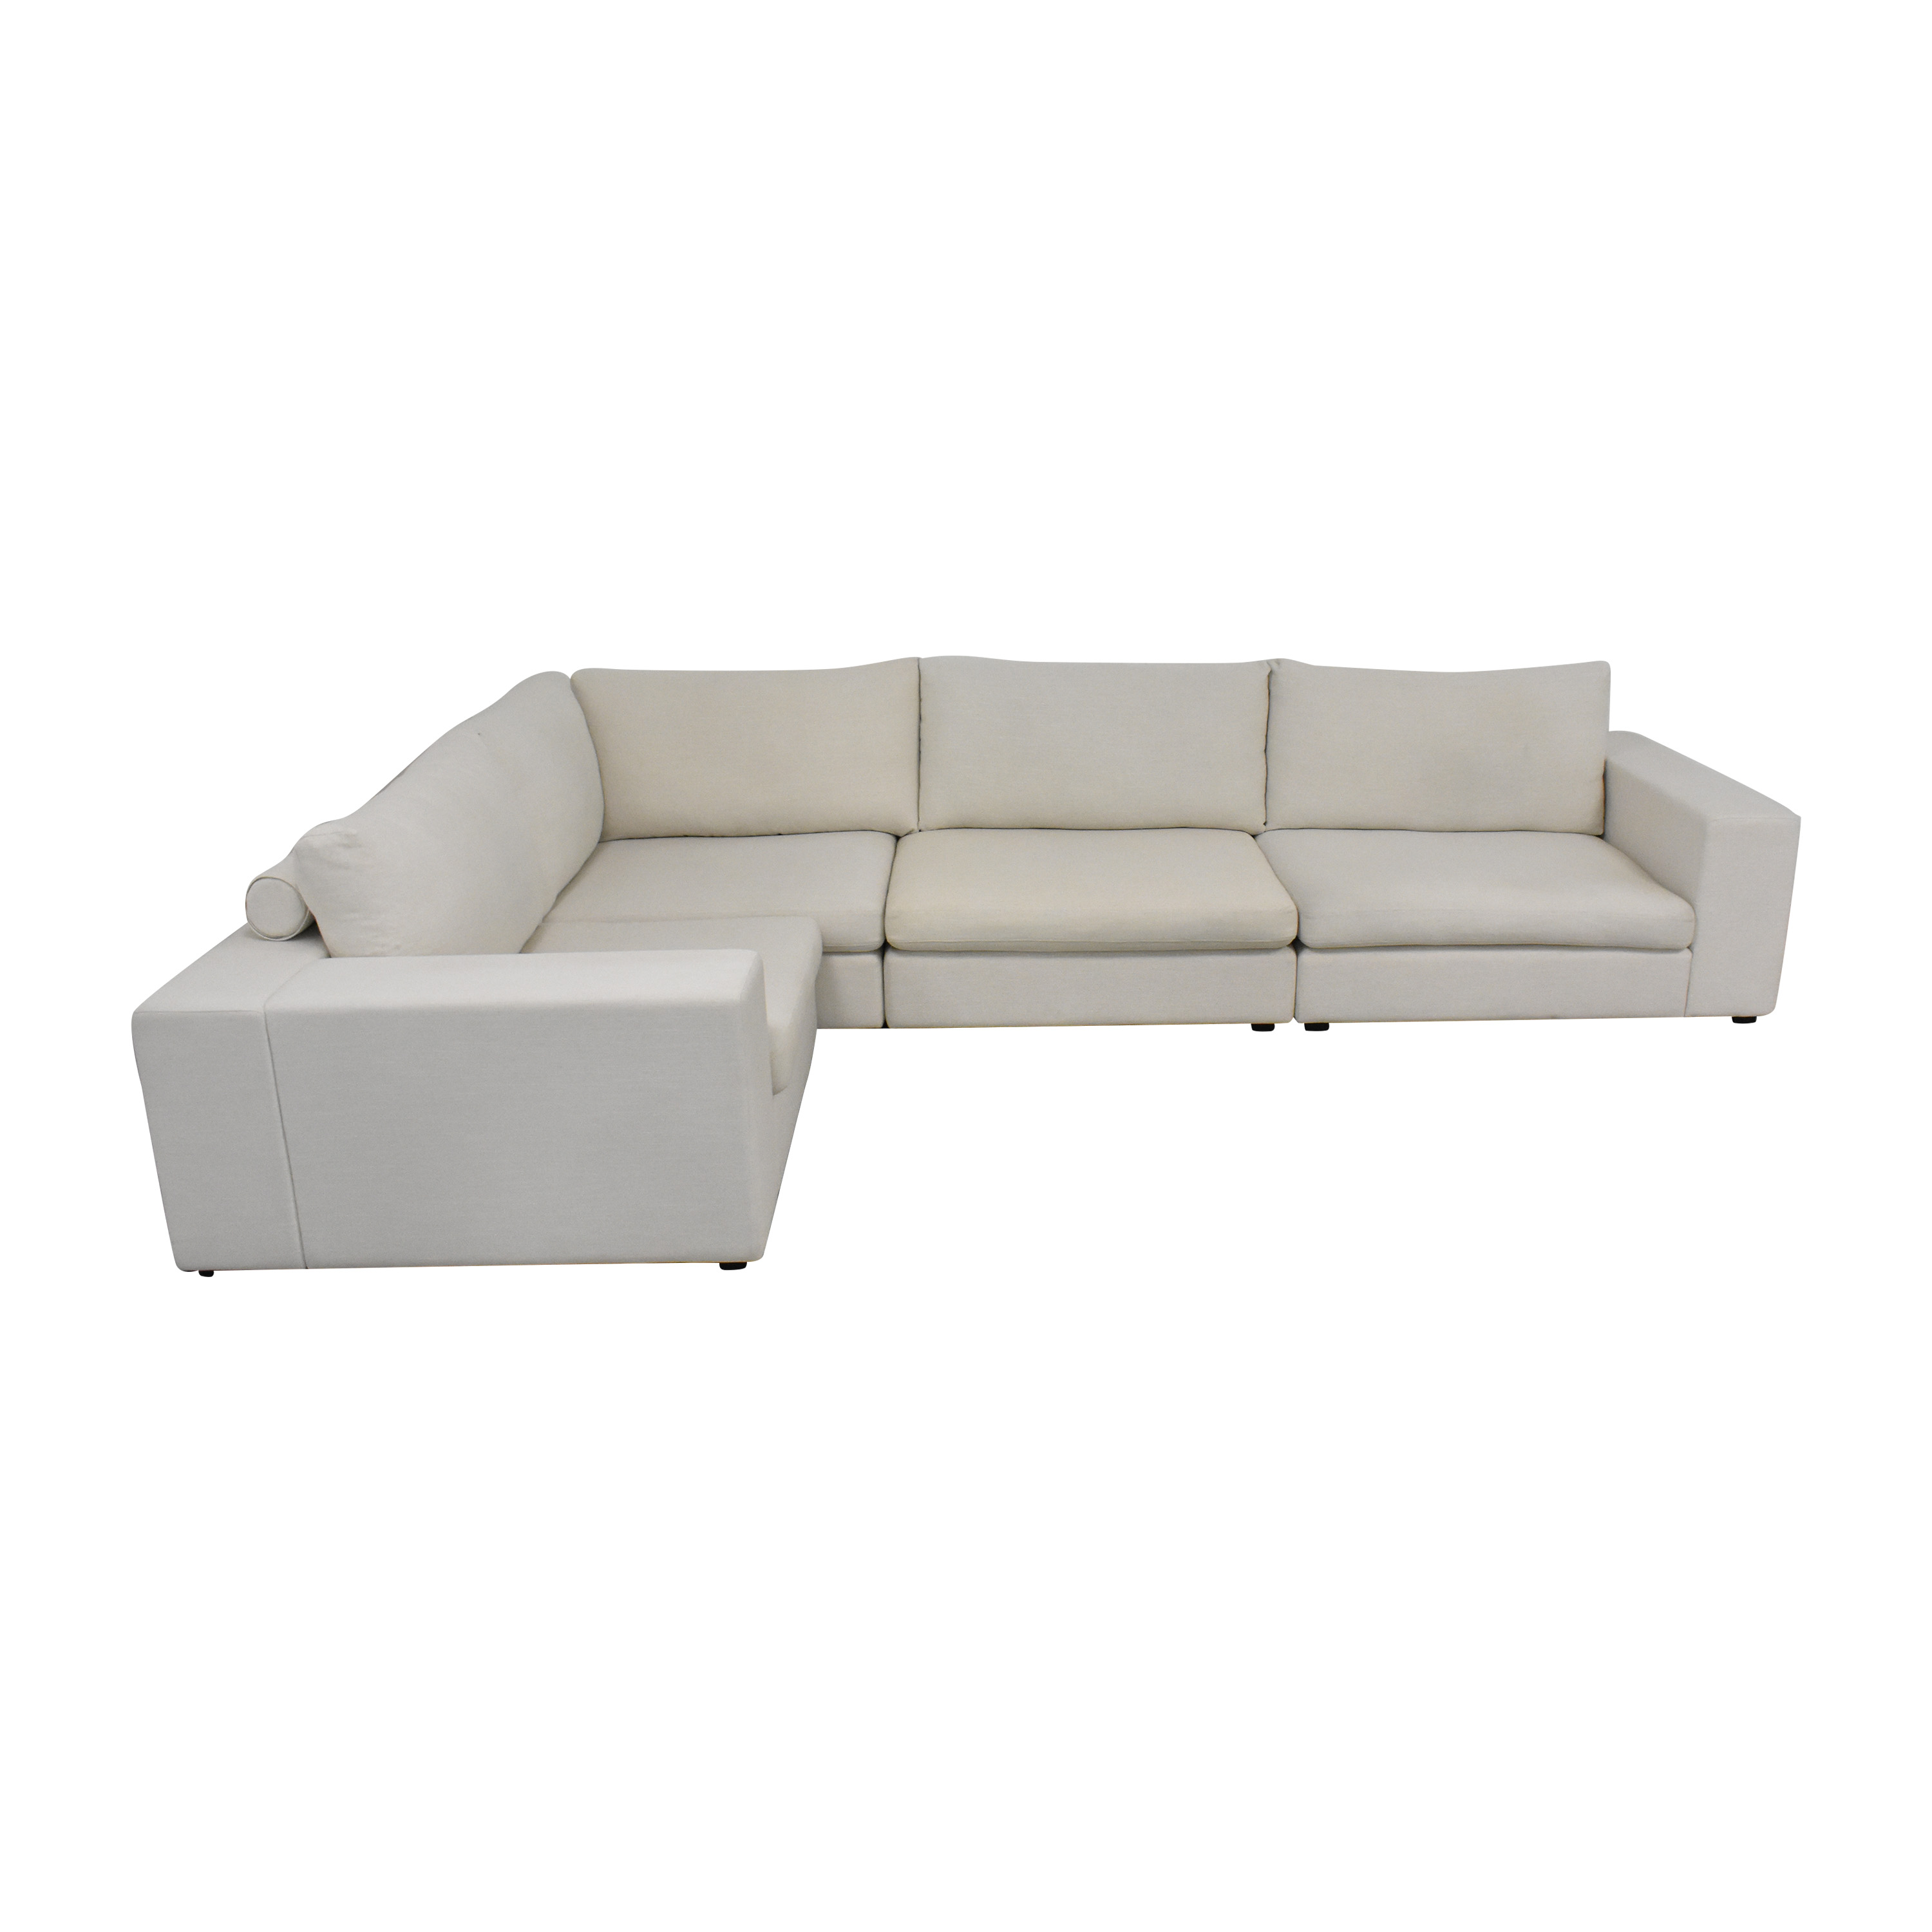 shop Article Article Beta Sectional Sofa online